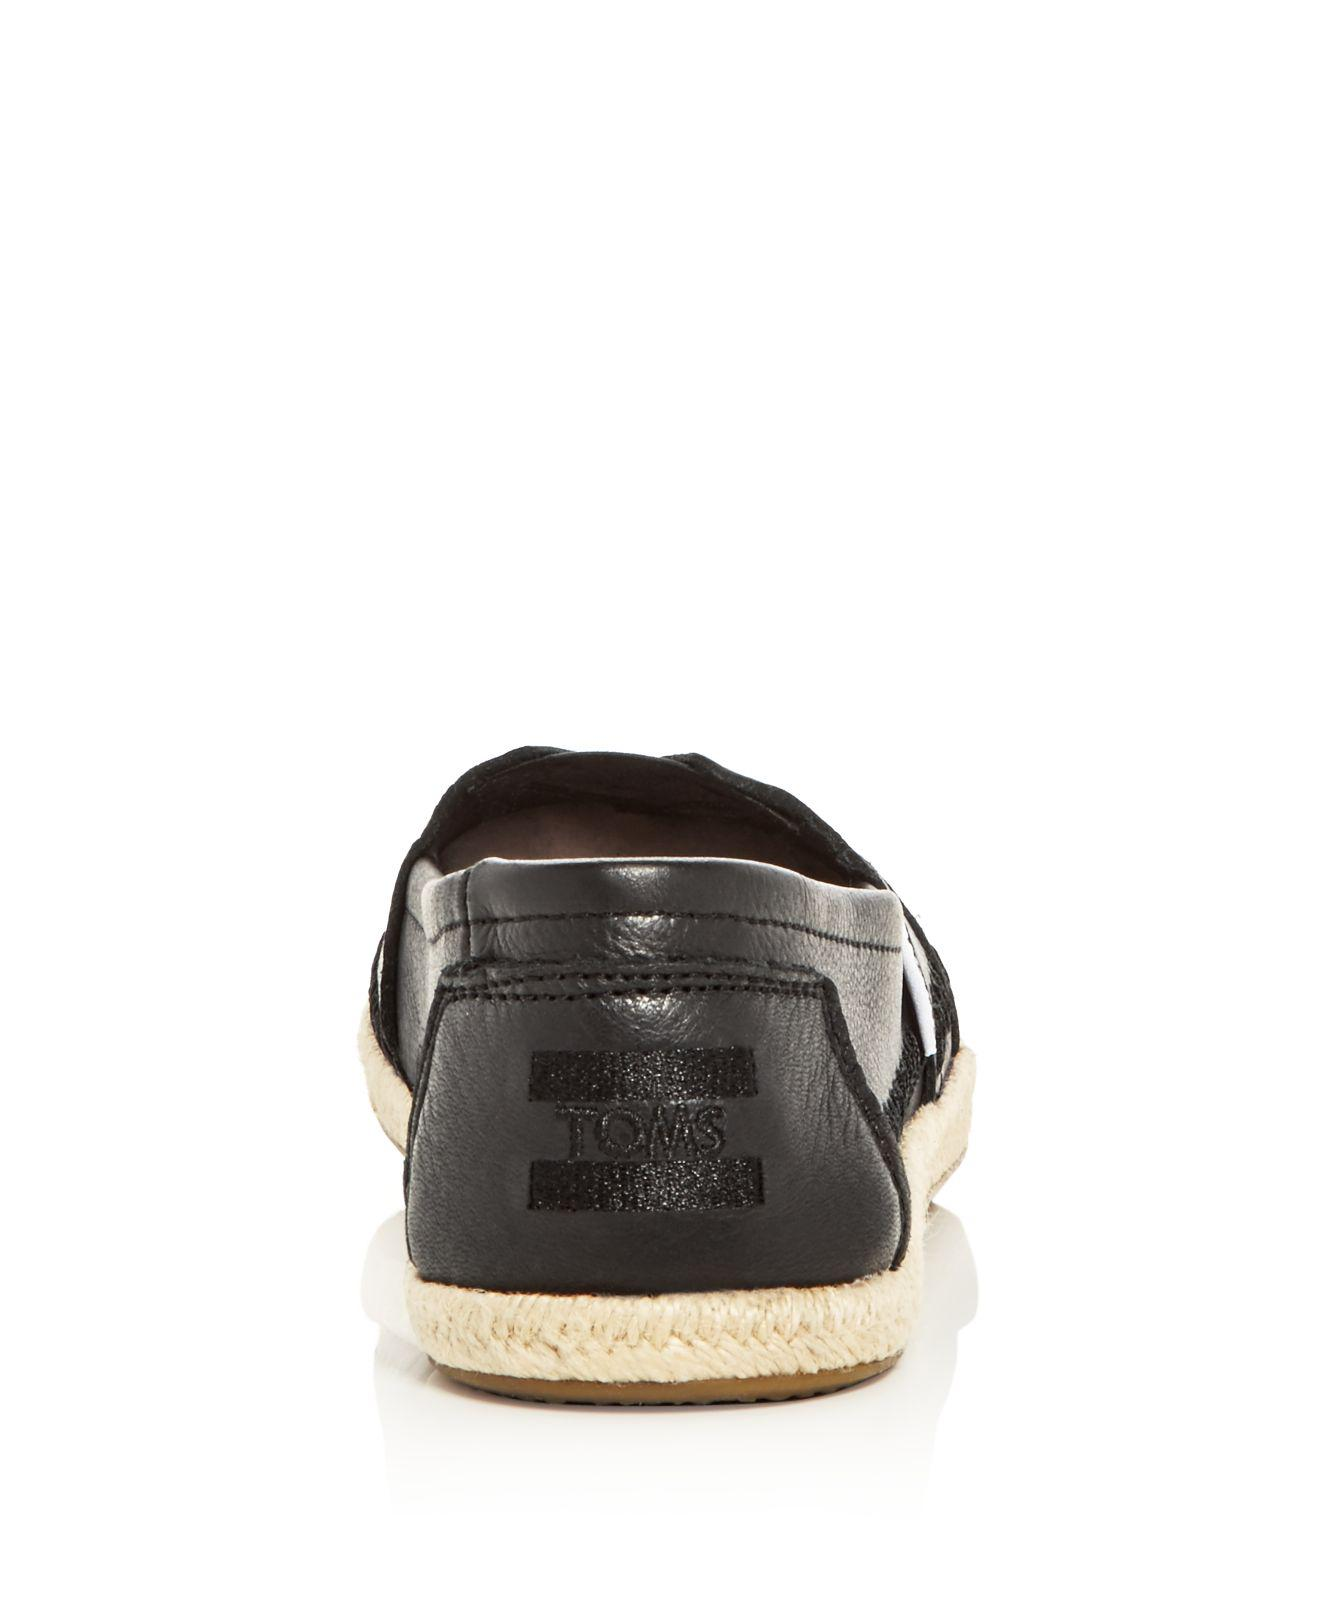 Toms Women S Leather Alpargata Espadrille Flats In Brown